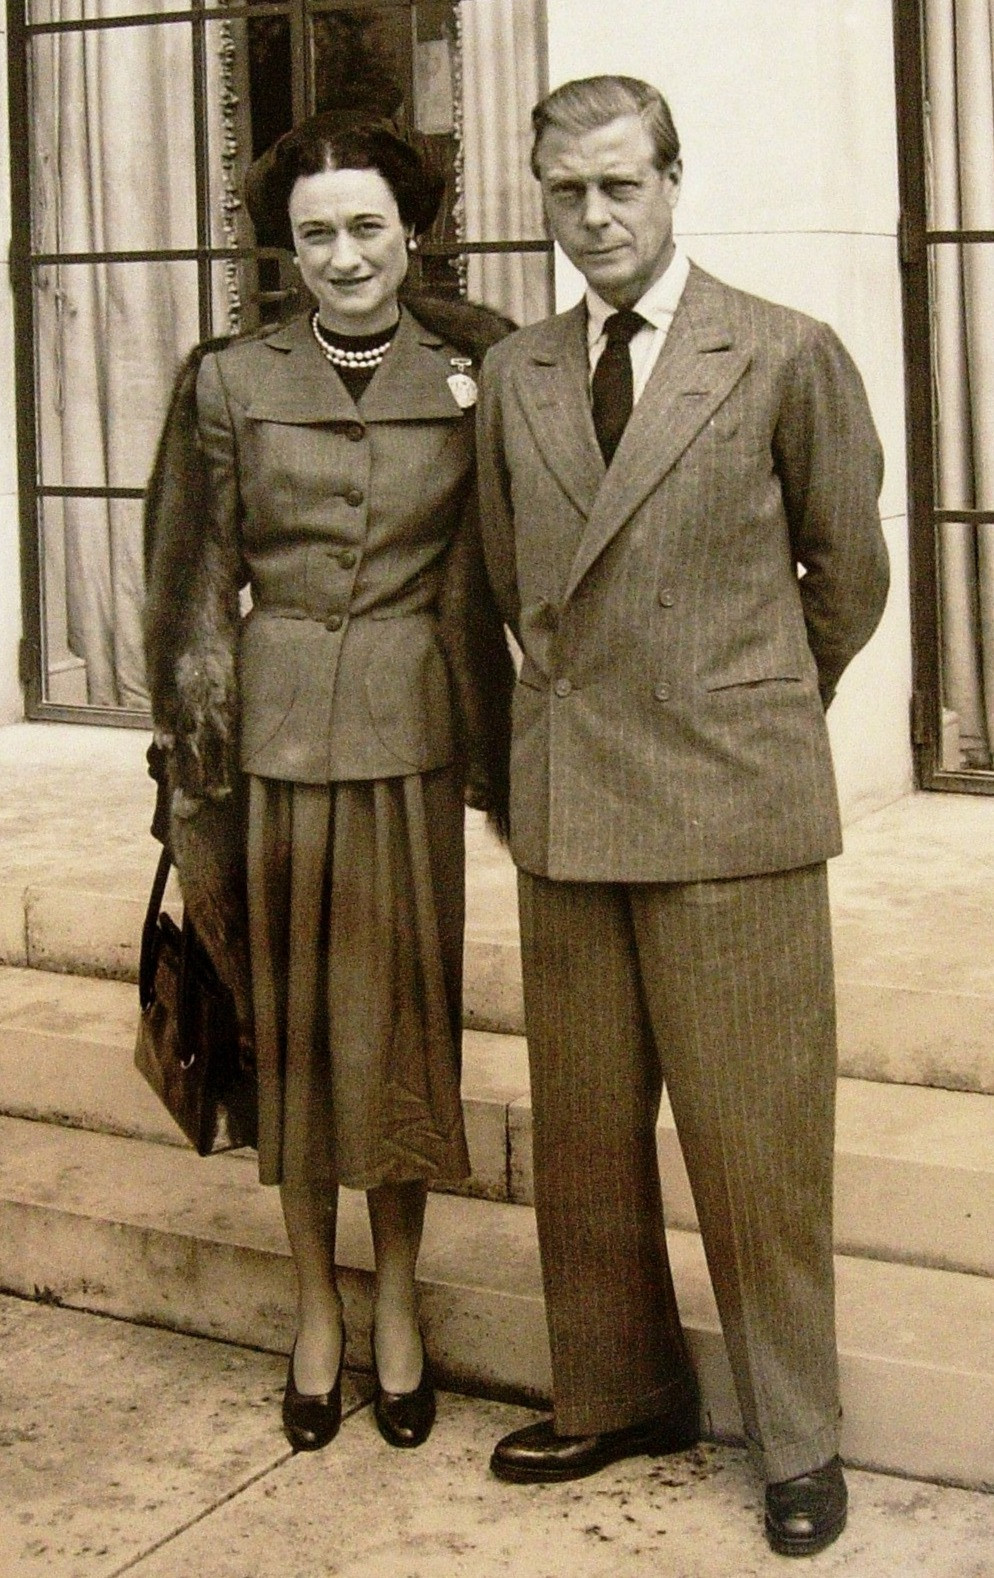 Duke and Duchess of Windsor standing outside Charters, Sunninghill during visit to England, 16th May 1947. Residence loaned to them by Mrs Frank Parkinson. Duchess wears fur stole around her shoulders.